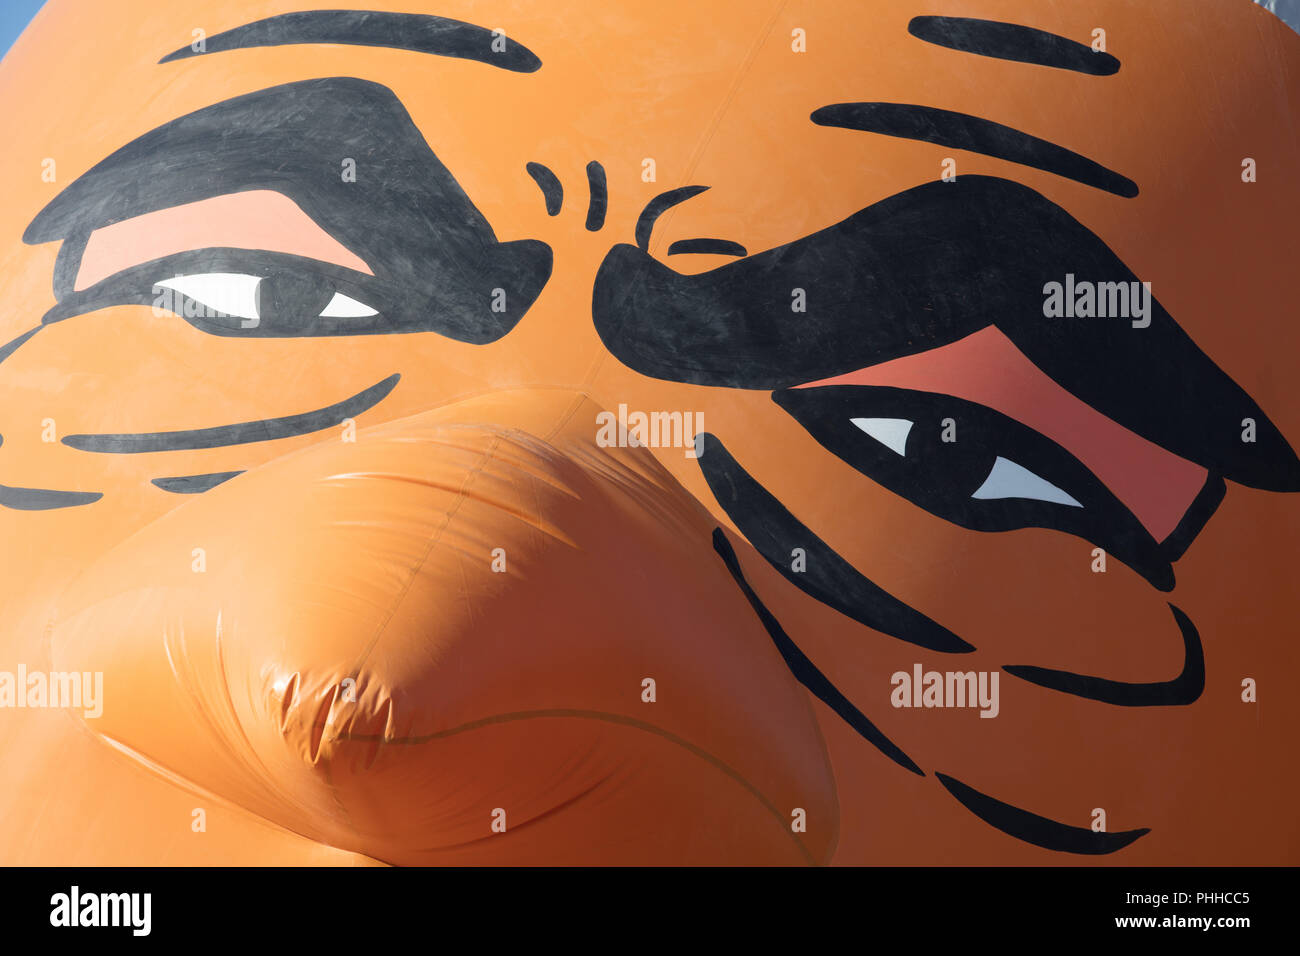 London, UK. 1st September, 2018. Detail of The Sadiq Khan Bikini blimp after being launched in Parliament Square. Organiser Yanny Bruere mocking the Mayor of London 'ban the bikini' policy and highlighting the high crime rate in the capital. Credit: joe Kuis/Alamy Live News - Stock Image